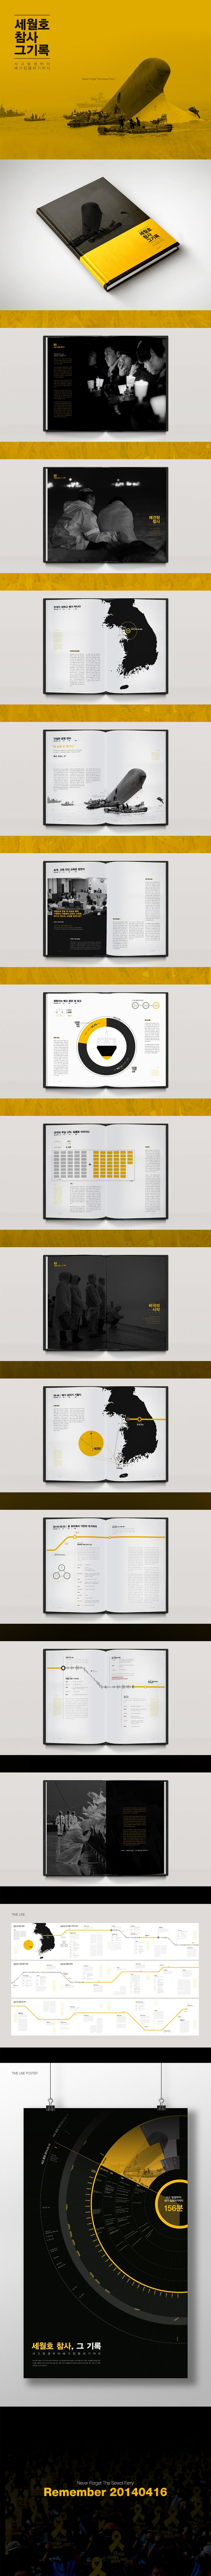 South Korea Sewol ferry disaster Timeline book and poster